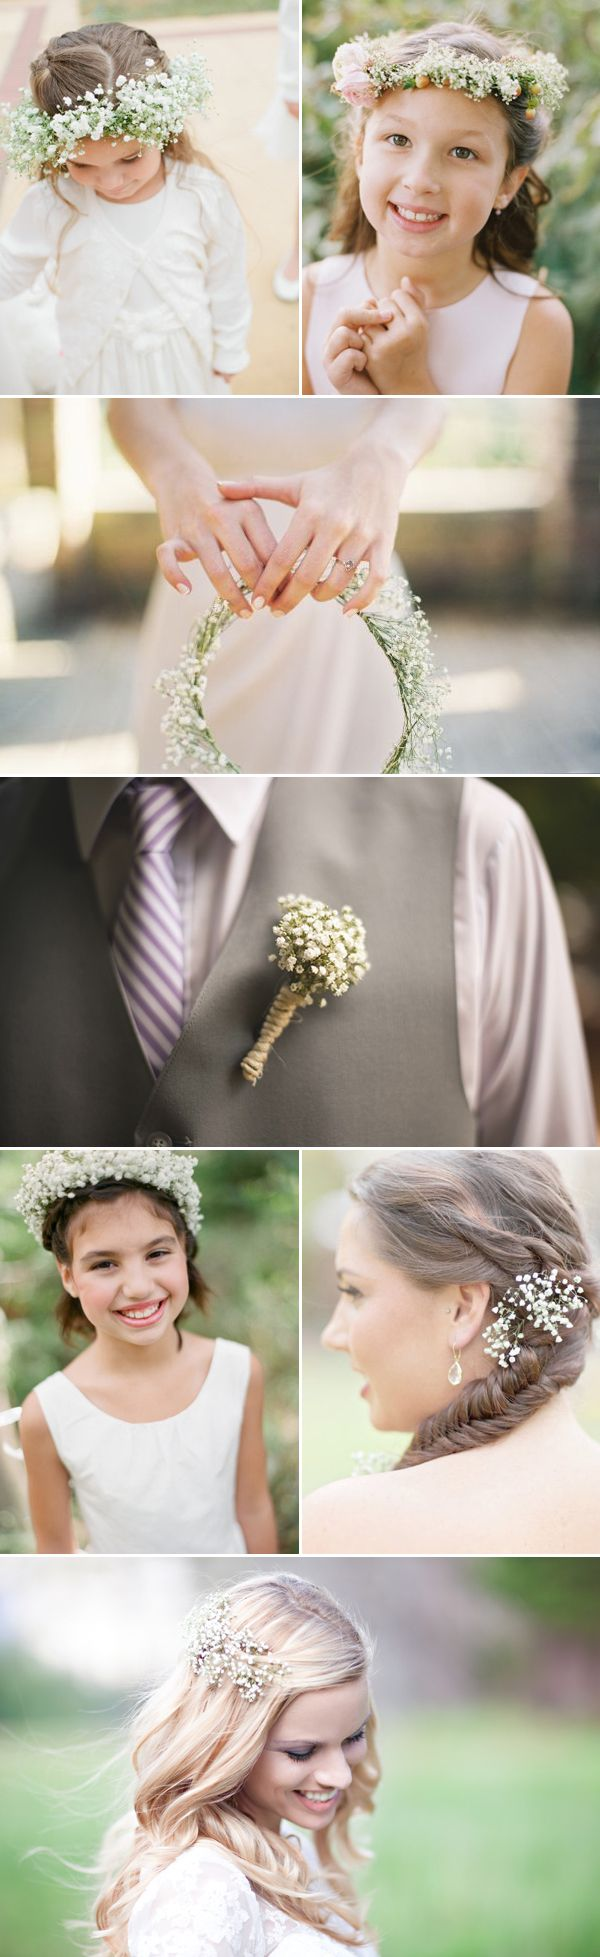 Baby's Breath Wedding Accessories